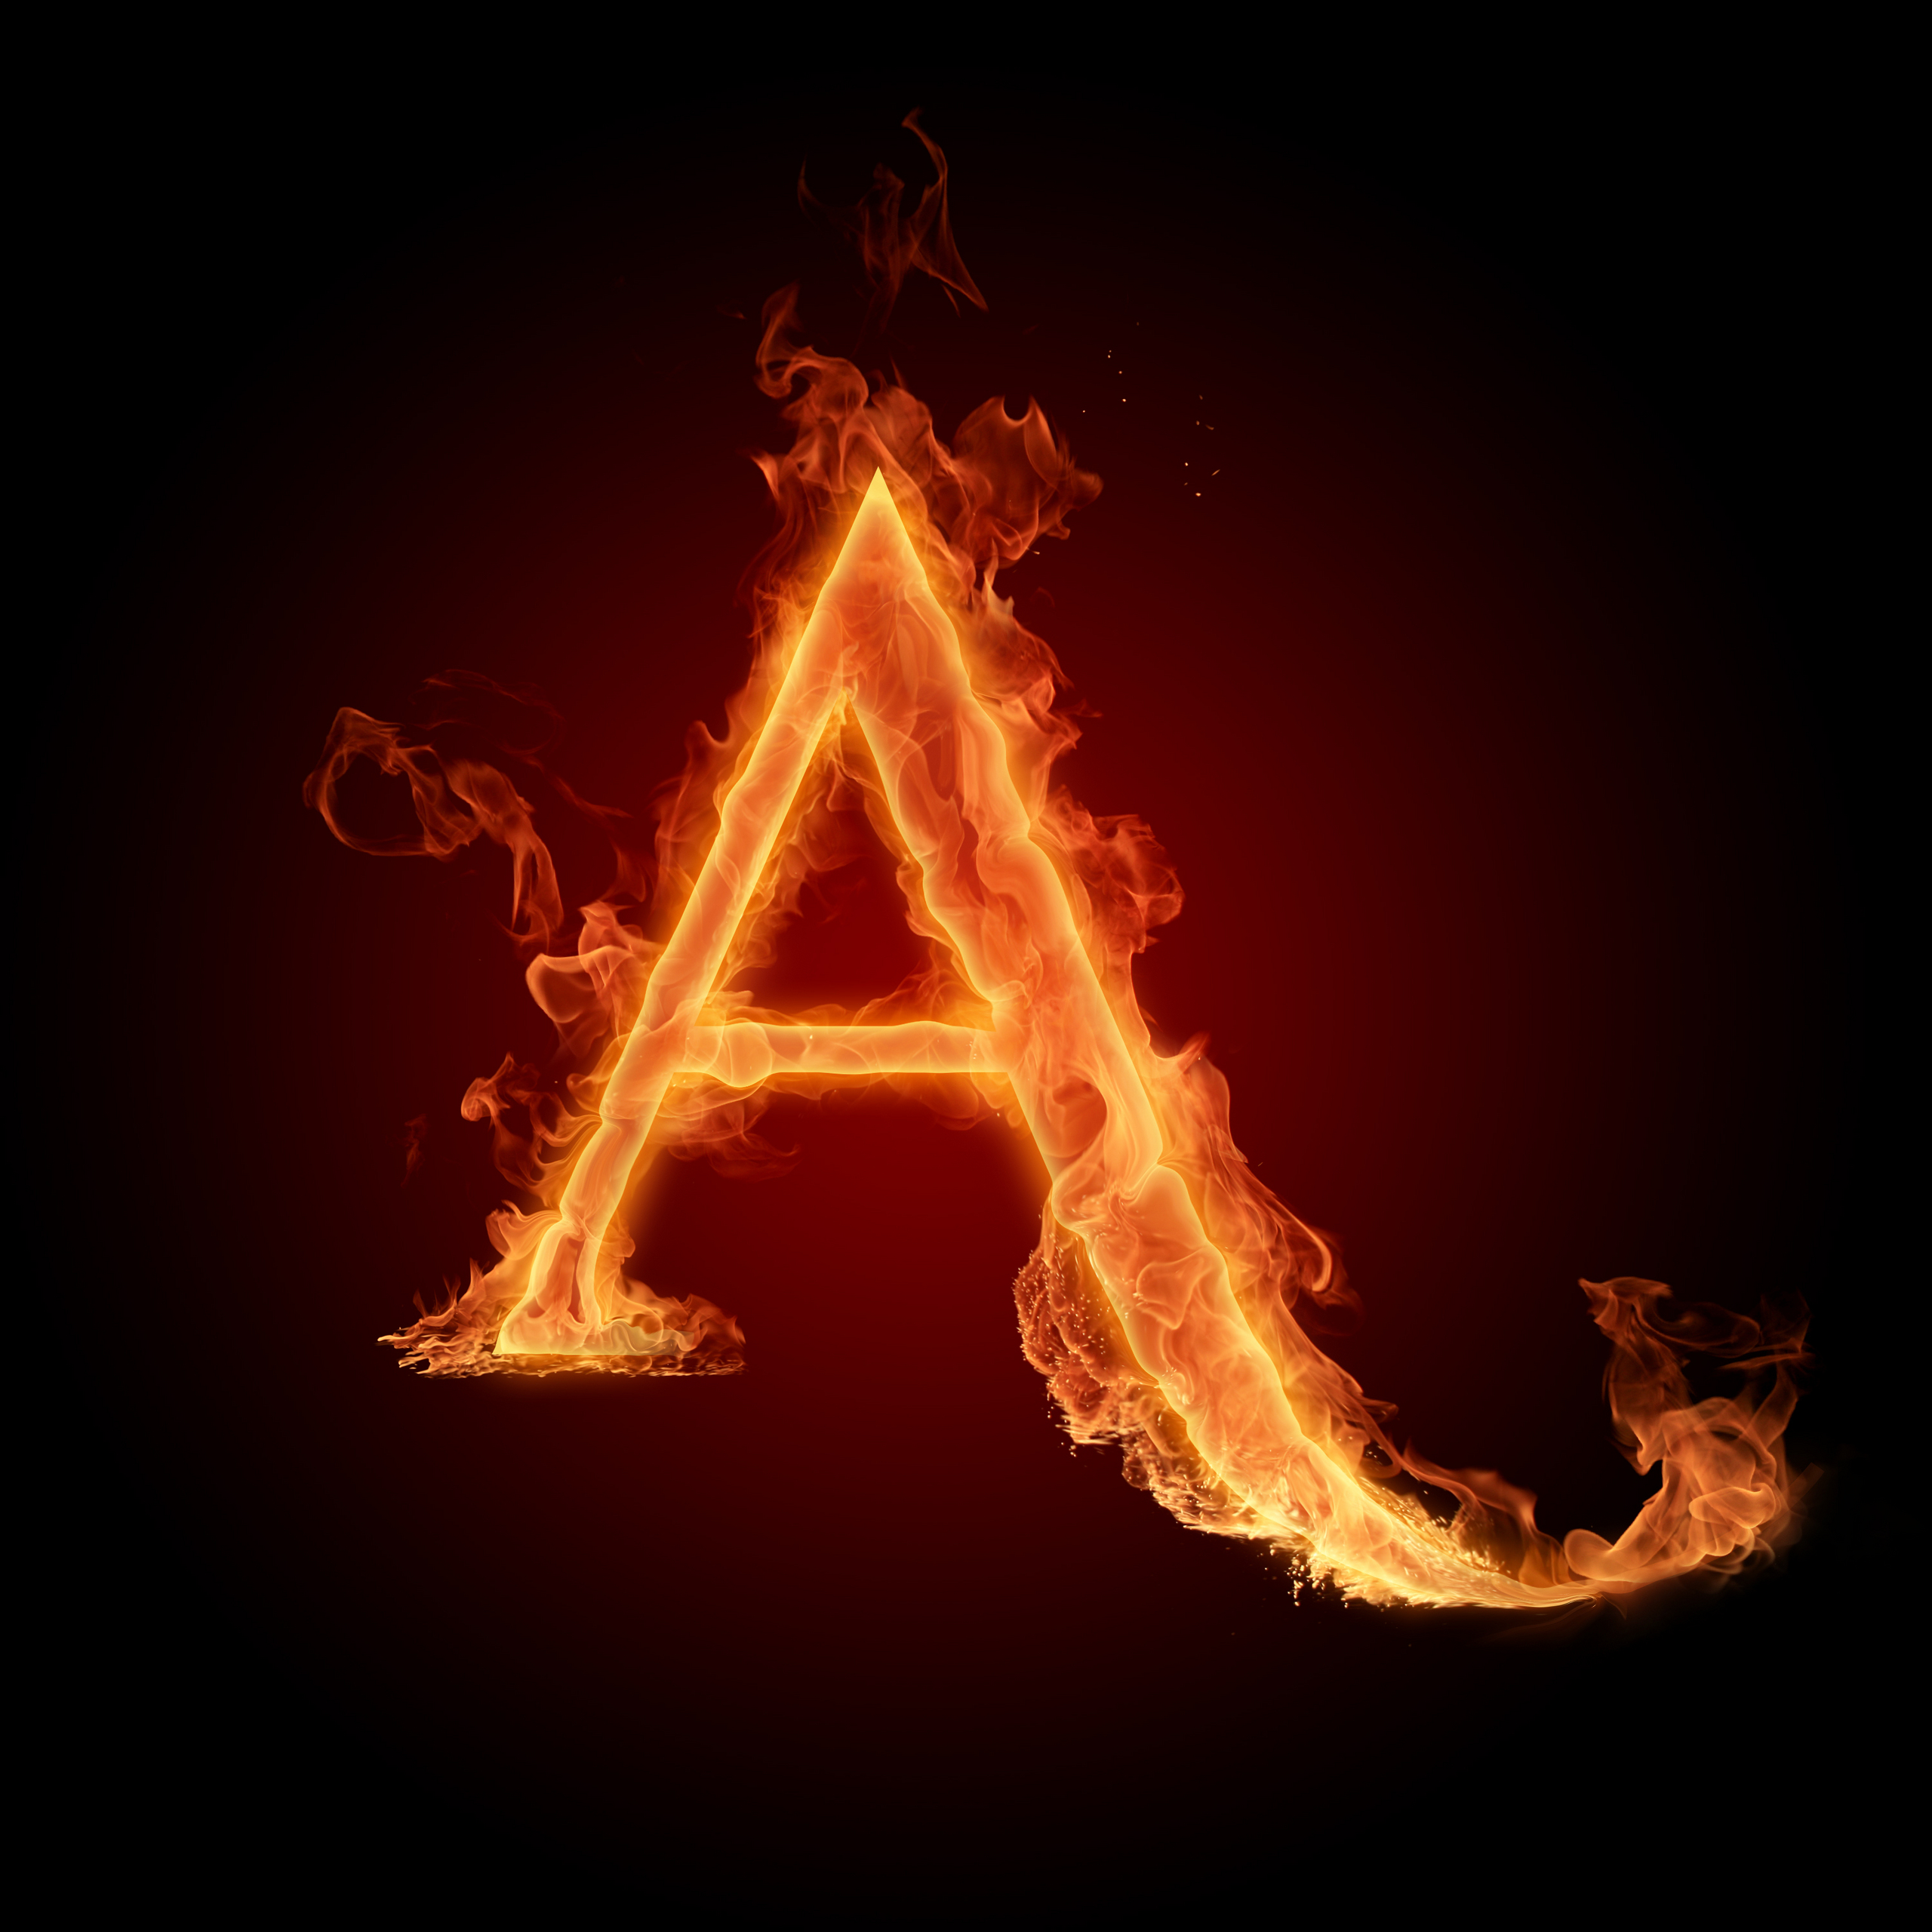 The Letter A Images The Letter A HD Wallpaper And Background Photos